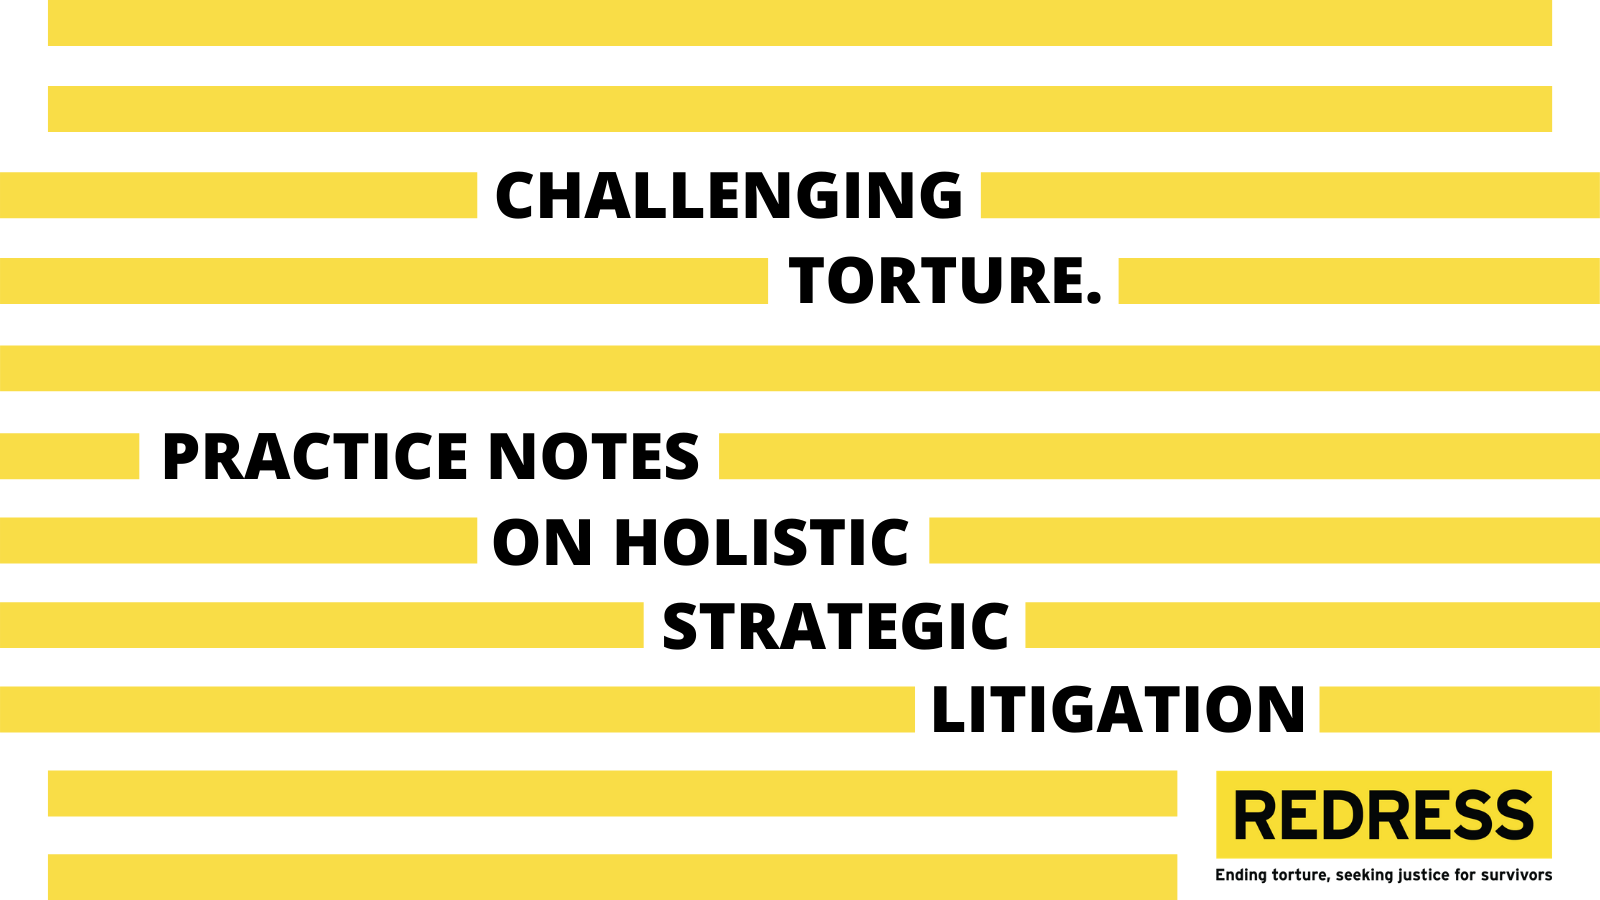 Challenging Torture and Ill-Treatment Through Holistic Strategic Litigation